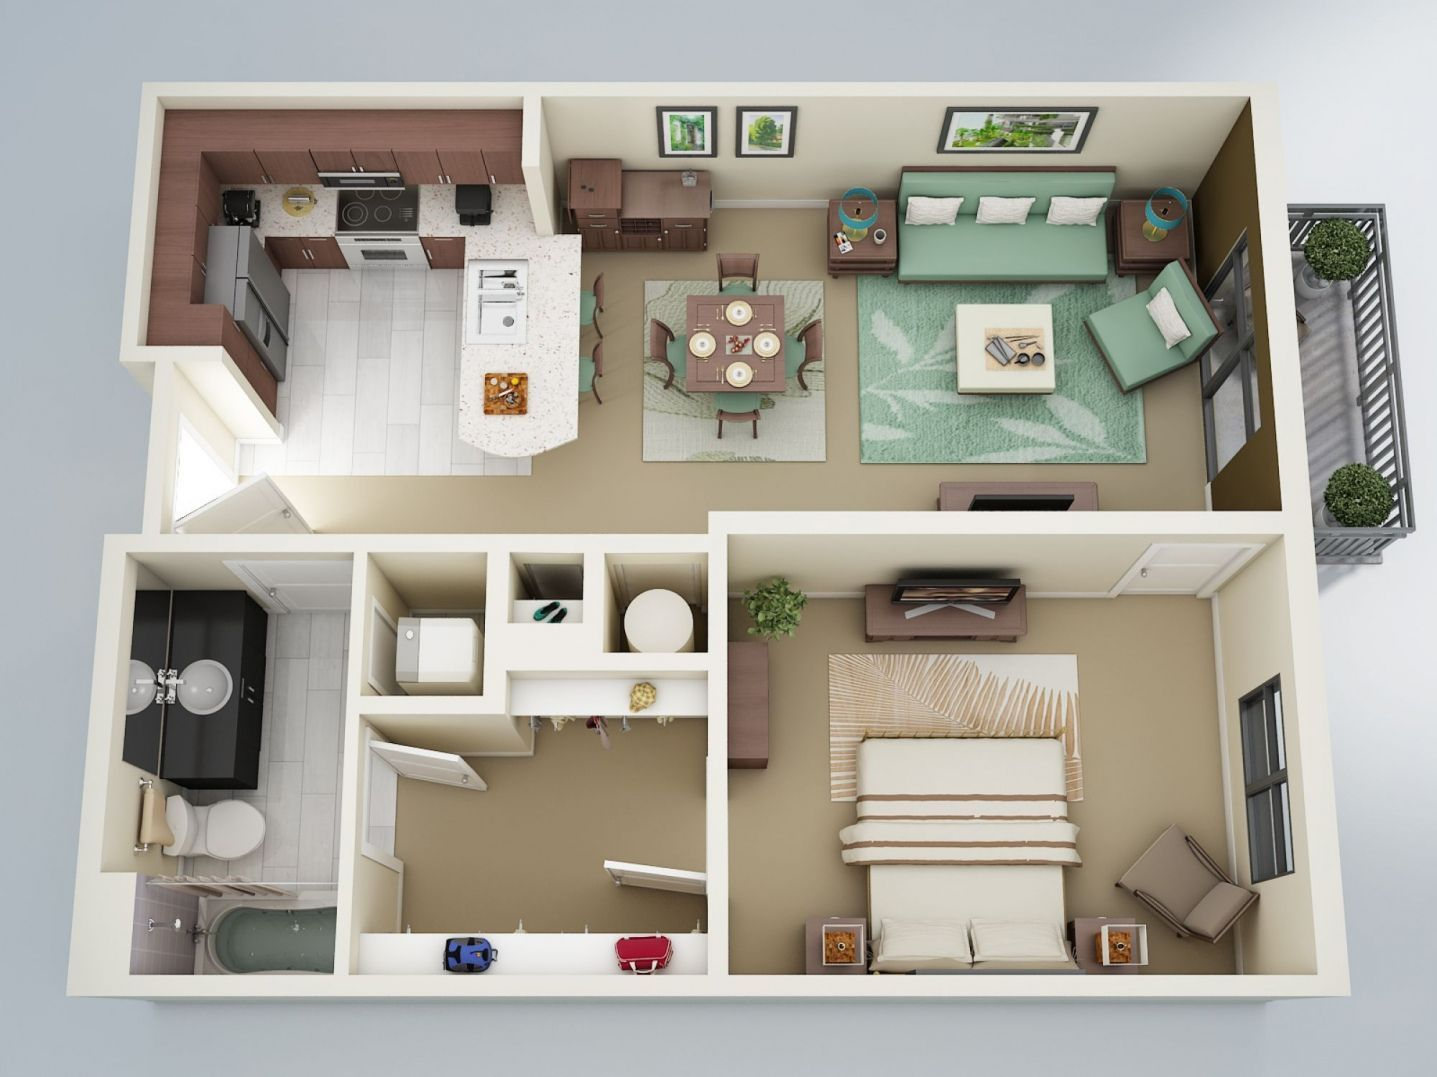 Large 1 Bedroom Apartment Floor Plans Bedroom Decorating Ideas On A Budget Check More At Htt One Bedroom Apartment Apartment Floor Plans Apartment Floor Plan